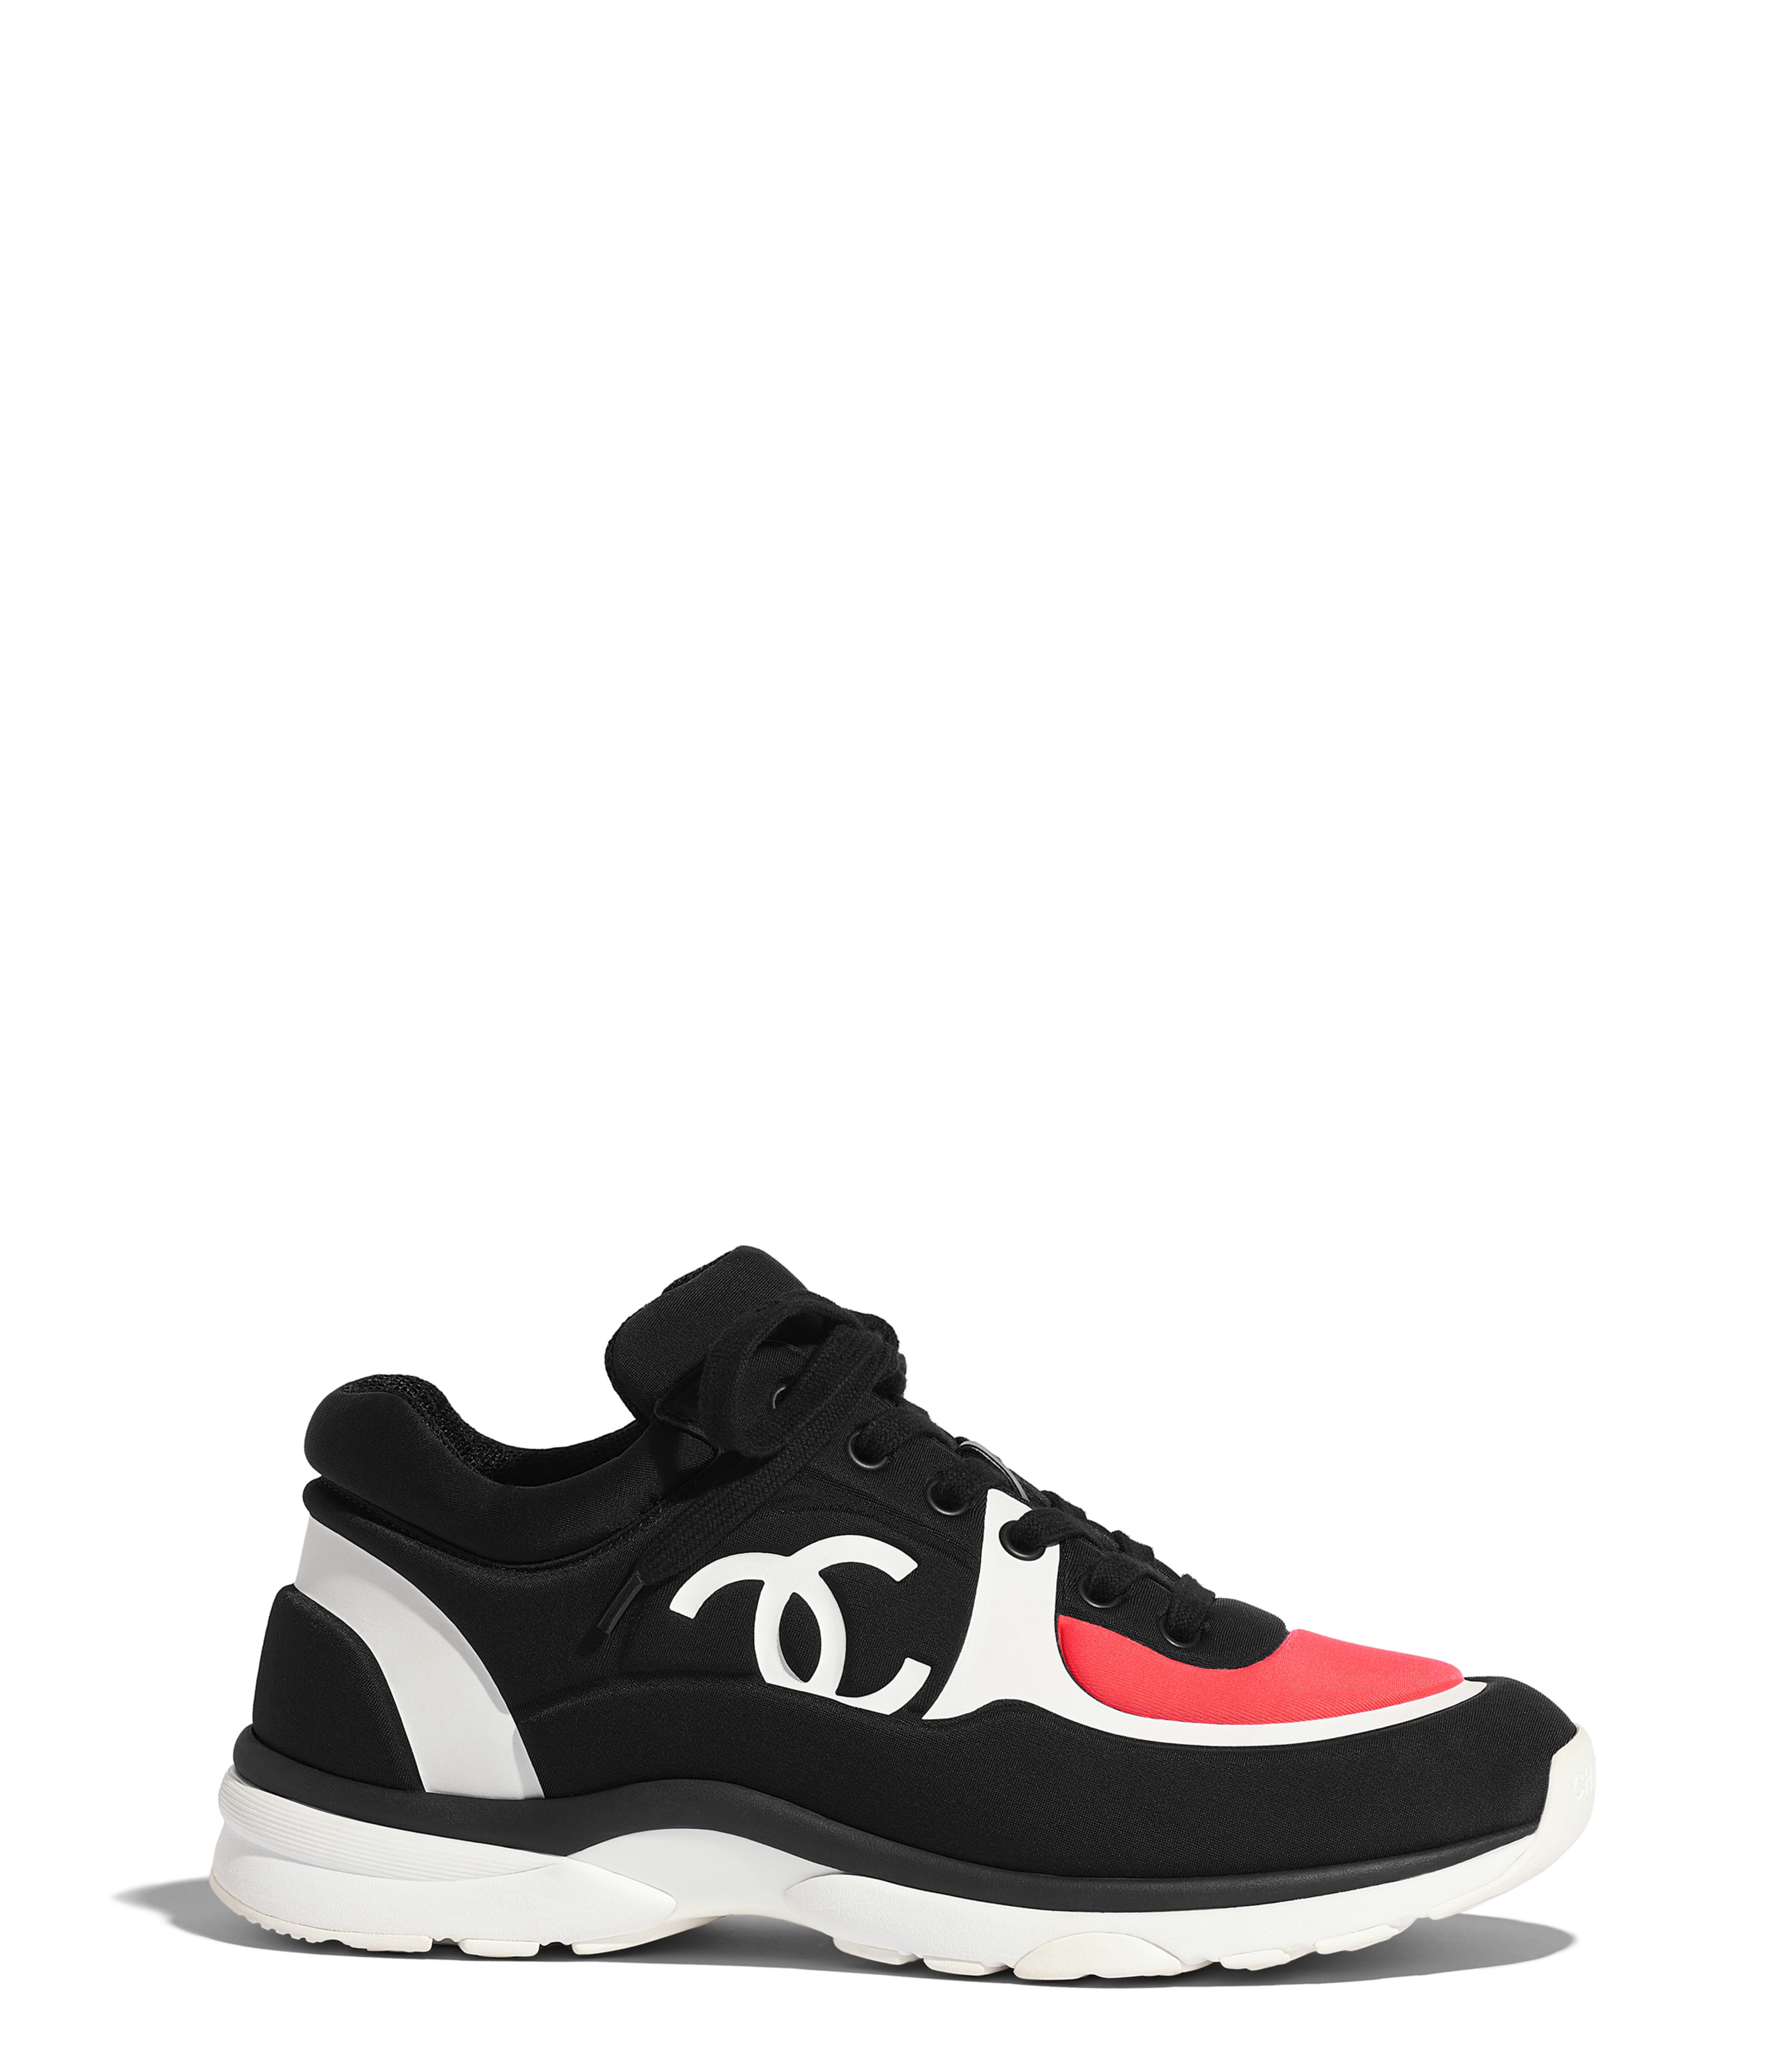 Sneakers Shoes Chanel